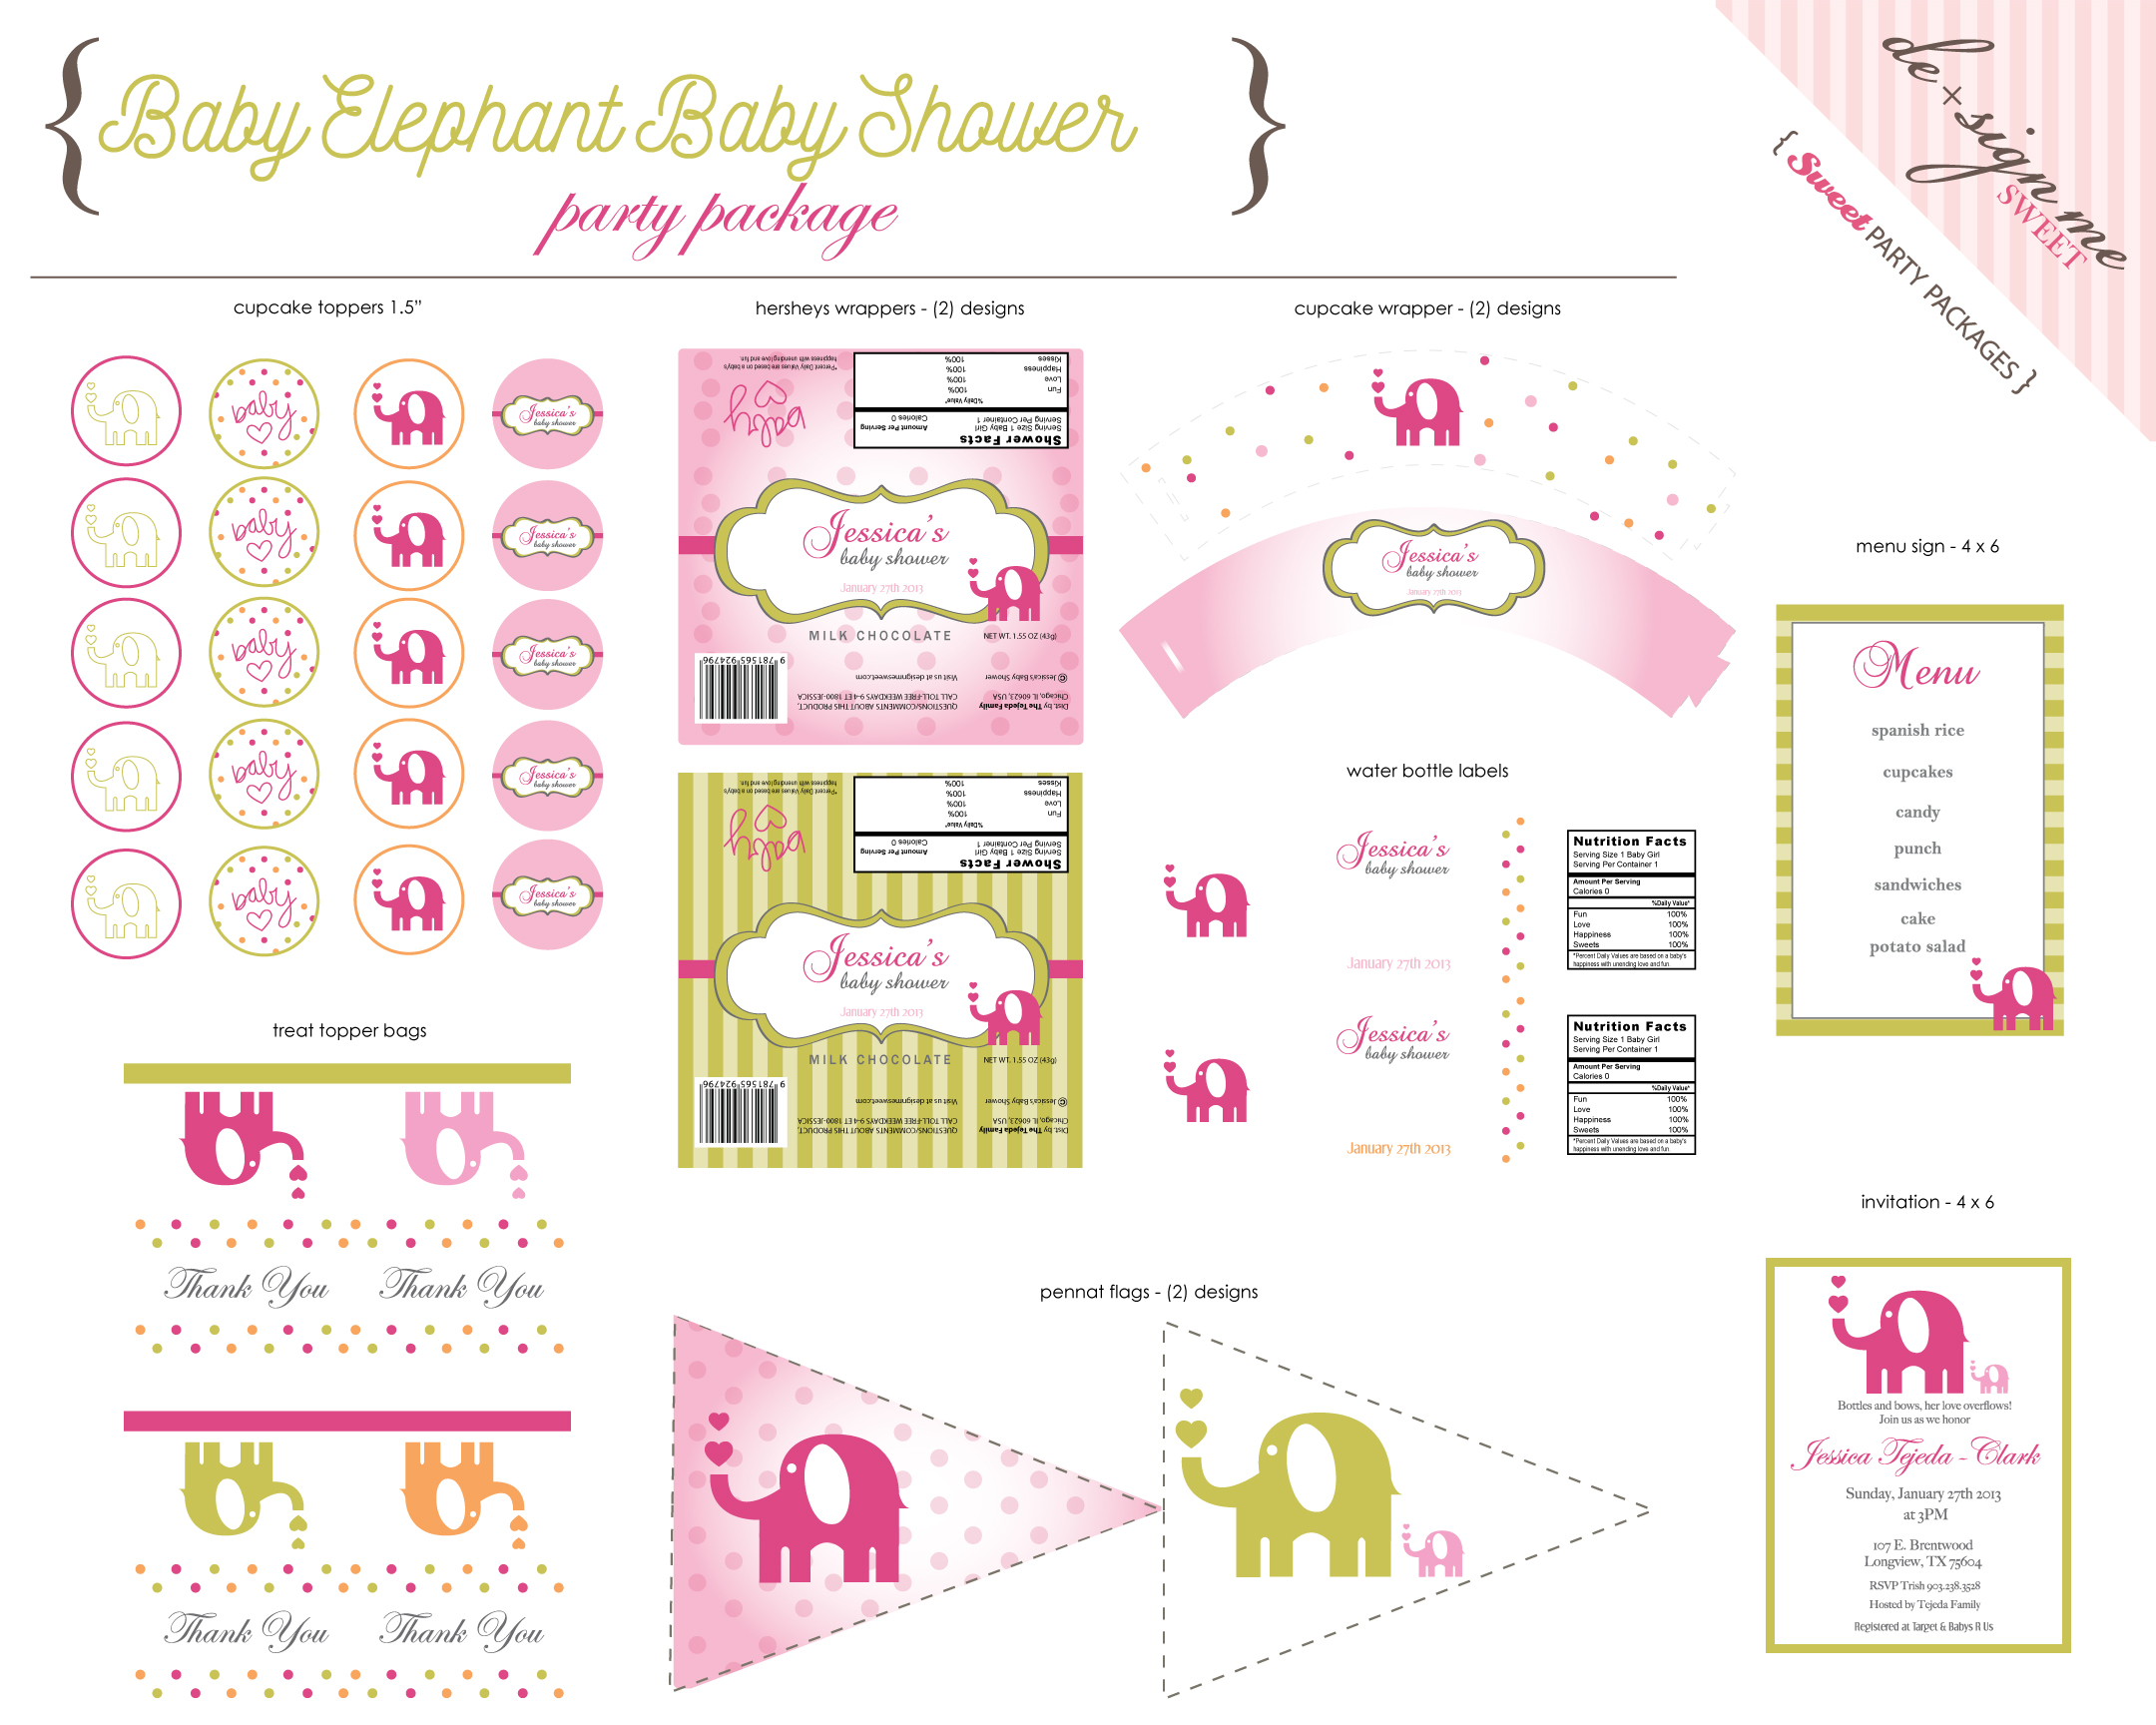 printables-design-elephant